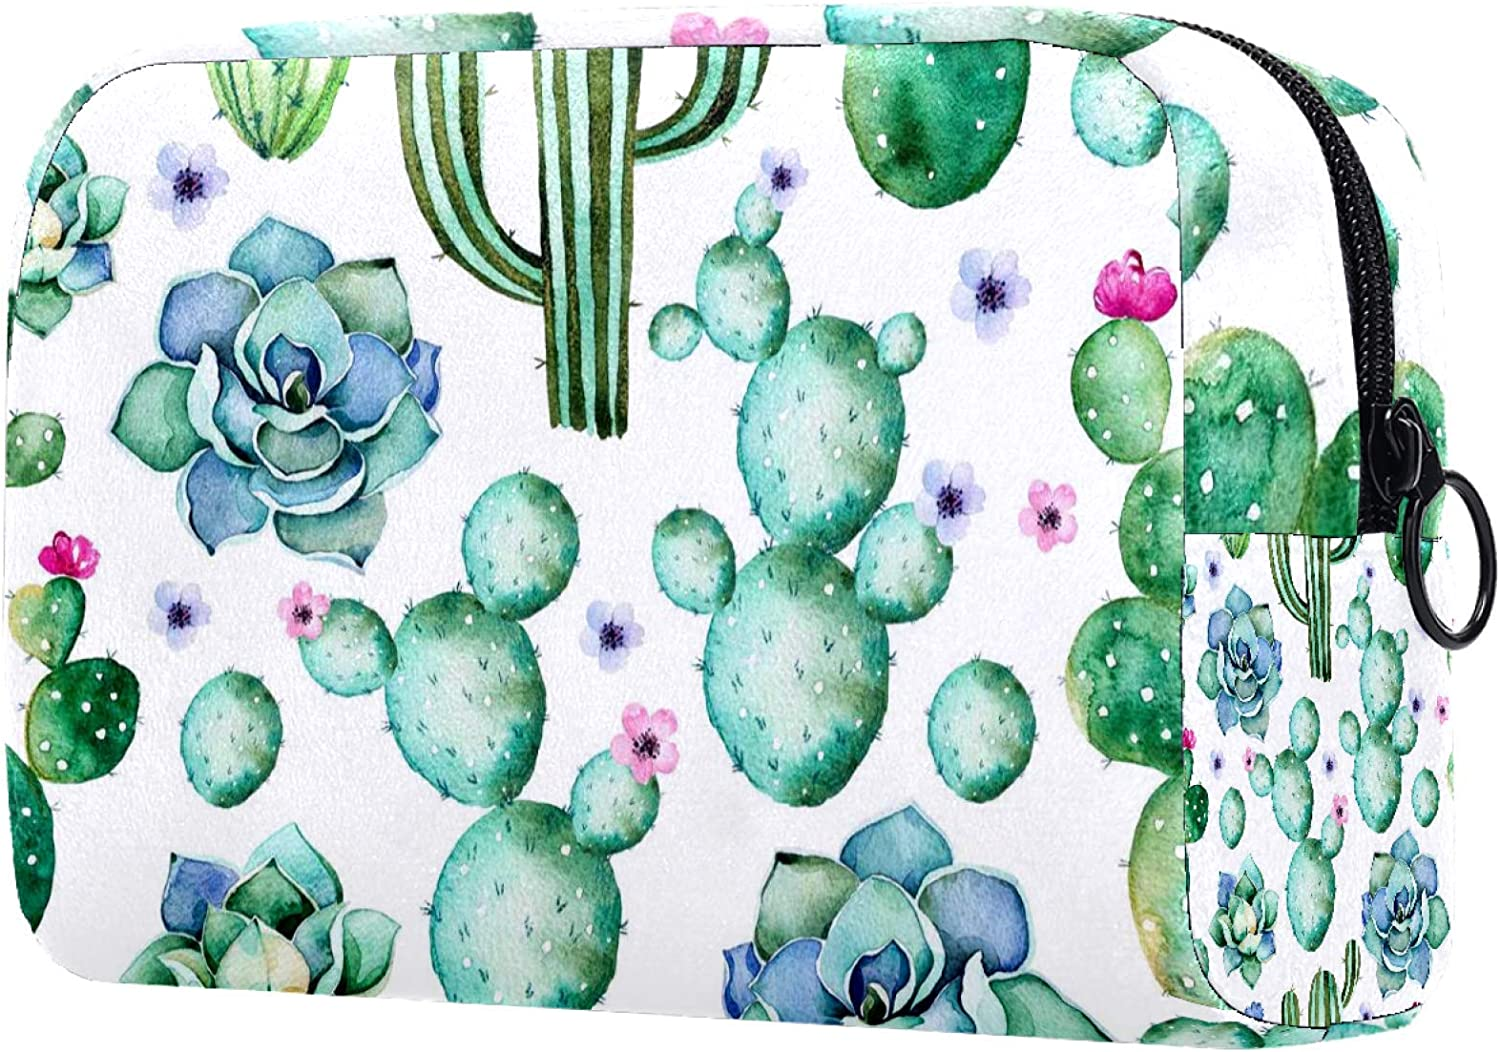 Cosmetic Save money bag Womens Max 82% OFF Waterproof Makeup Bag travel For to co carry